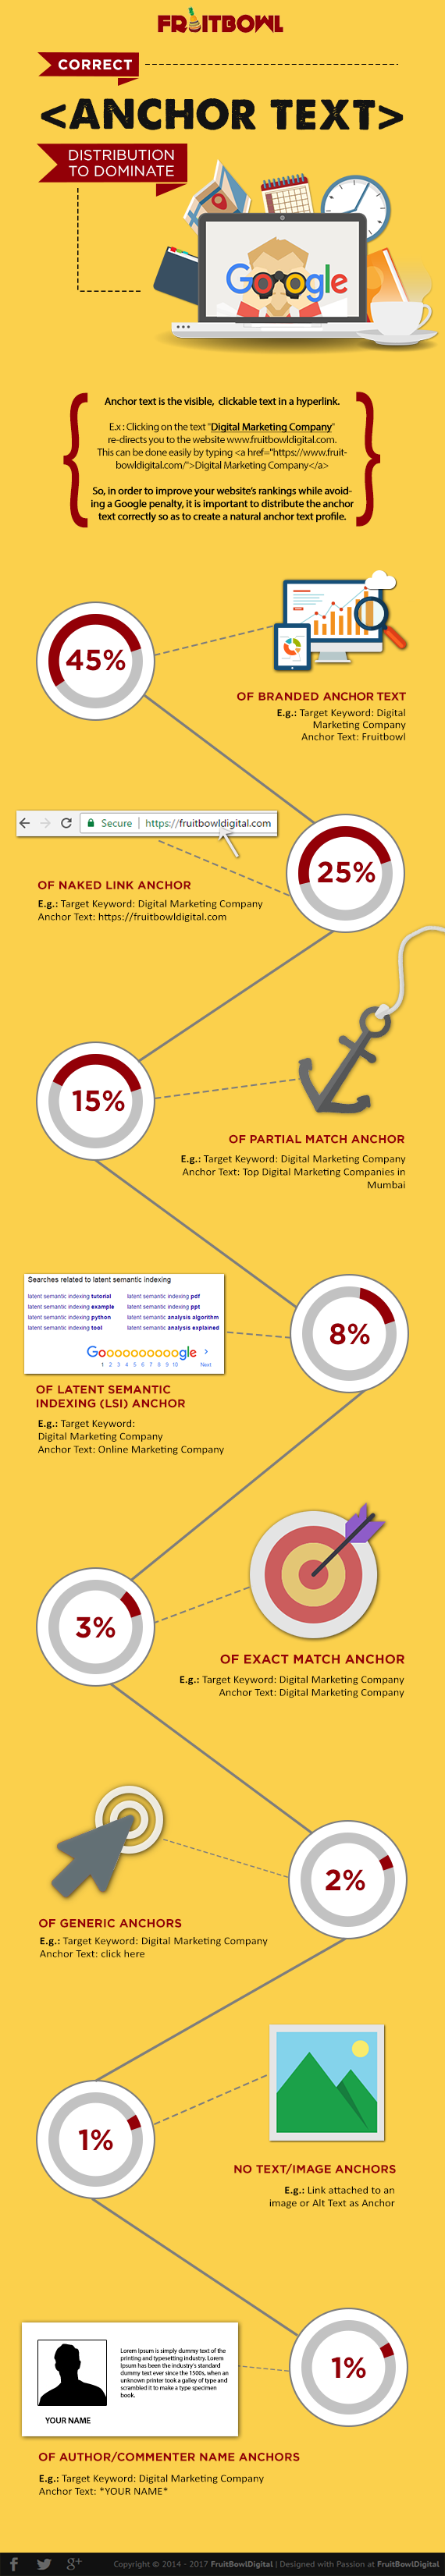 Correct Anchor Text Distribution to Dominate Google - Fruitbowl Digital